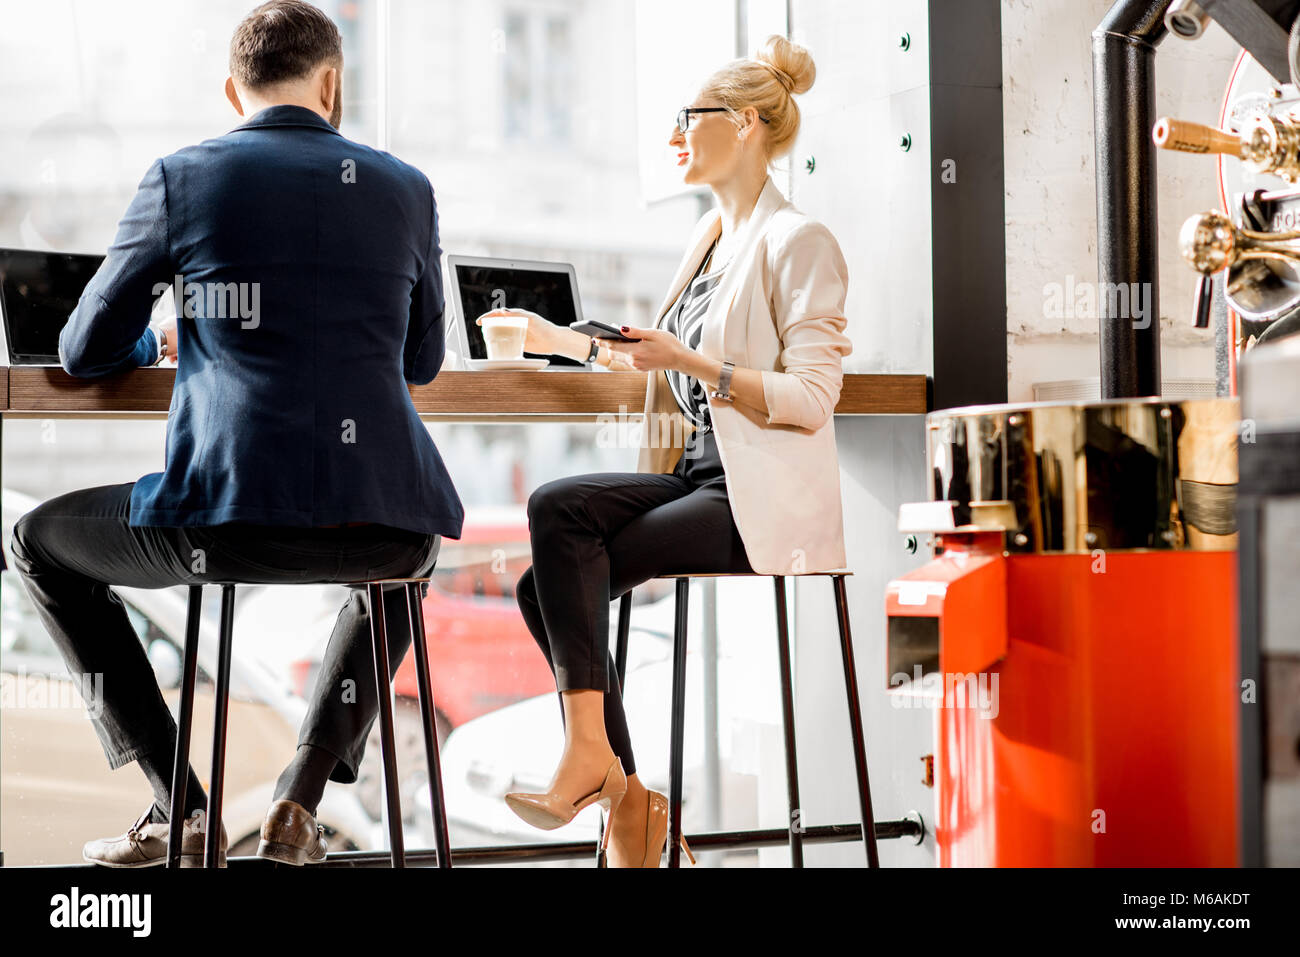 Business couple in the cafe - Stock Image